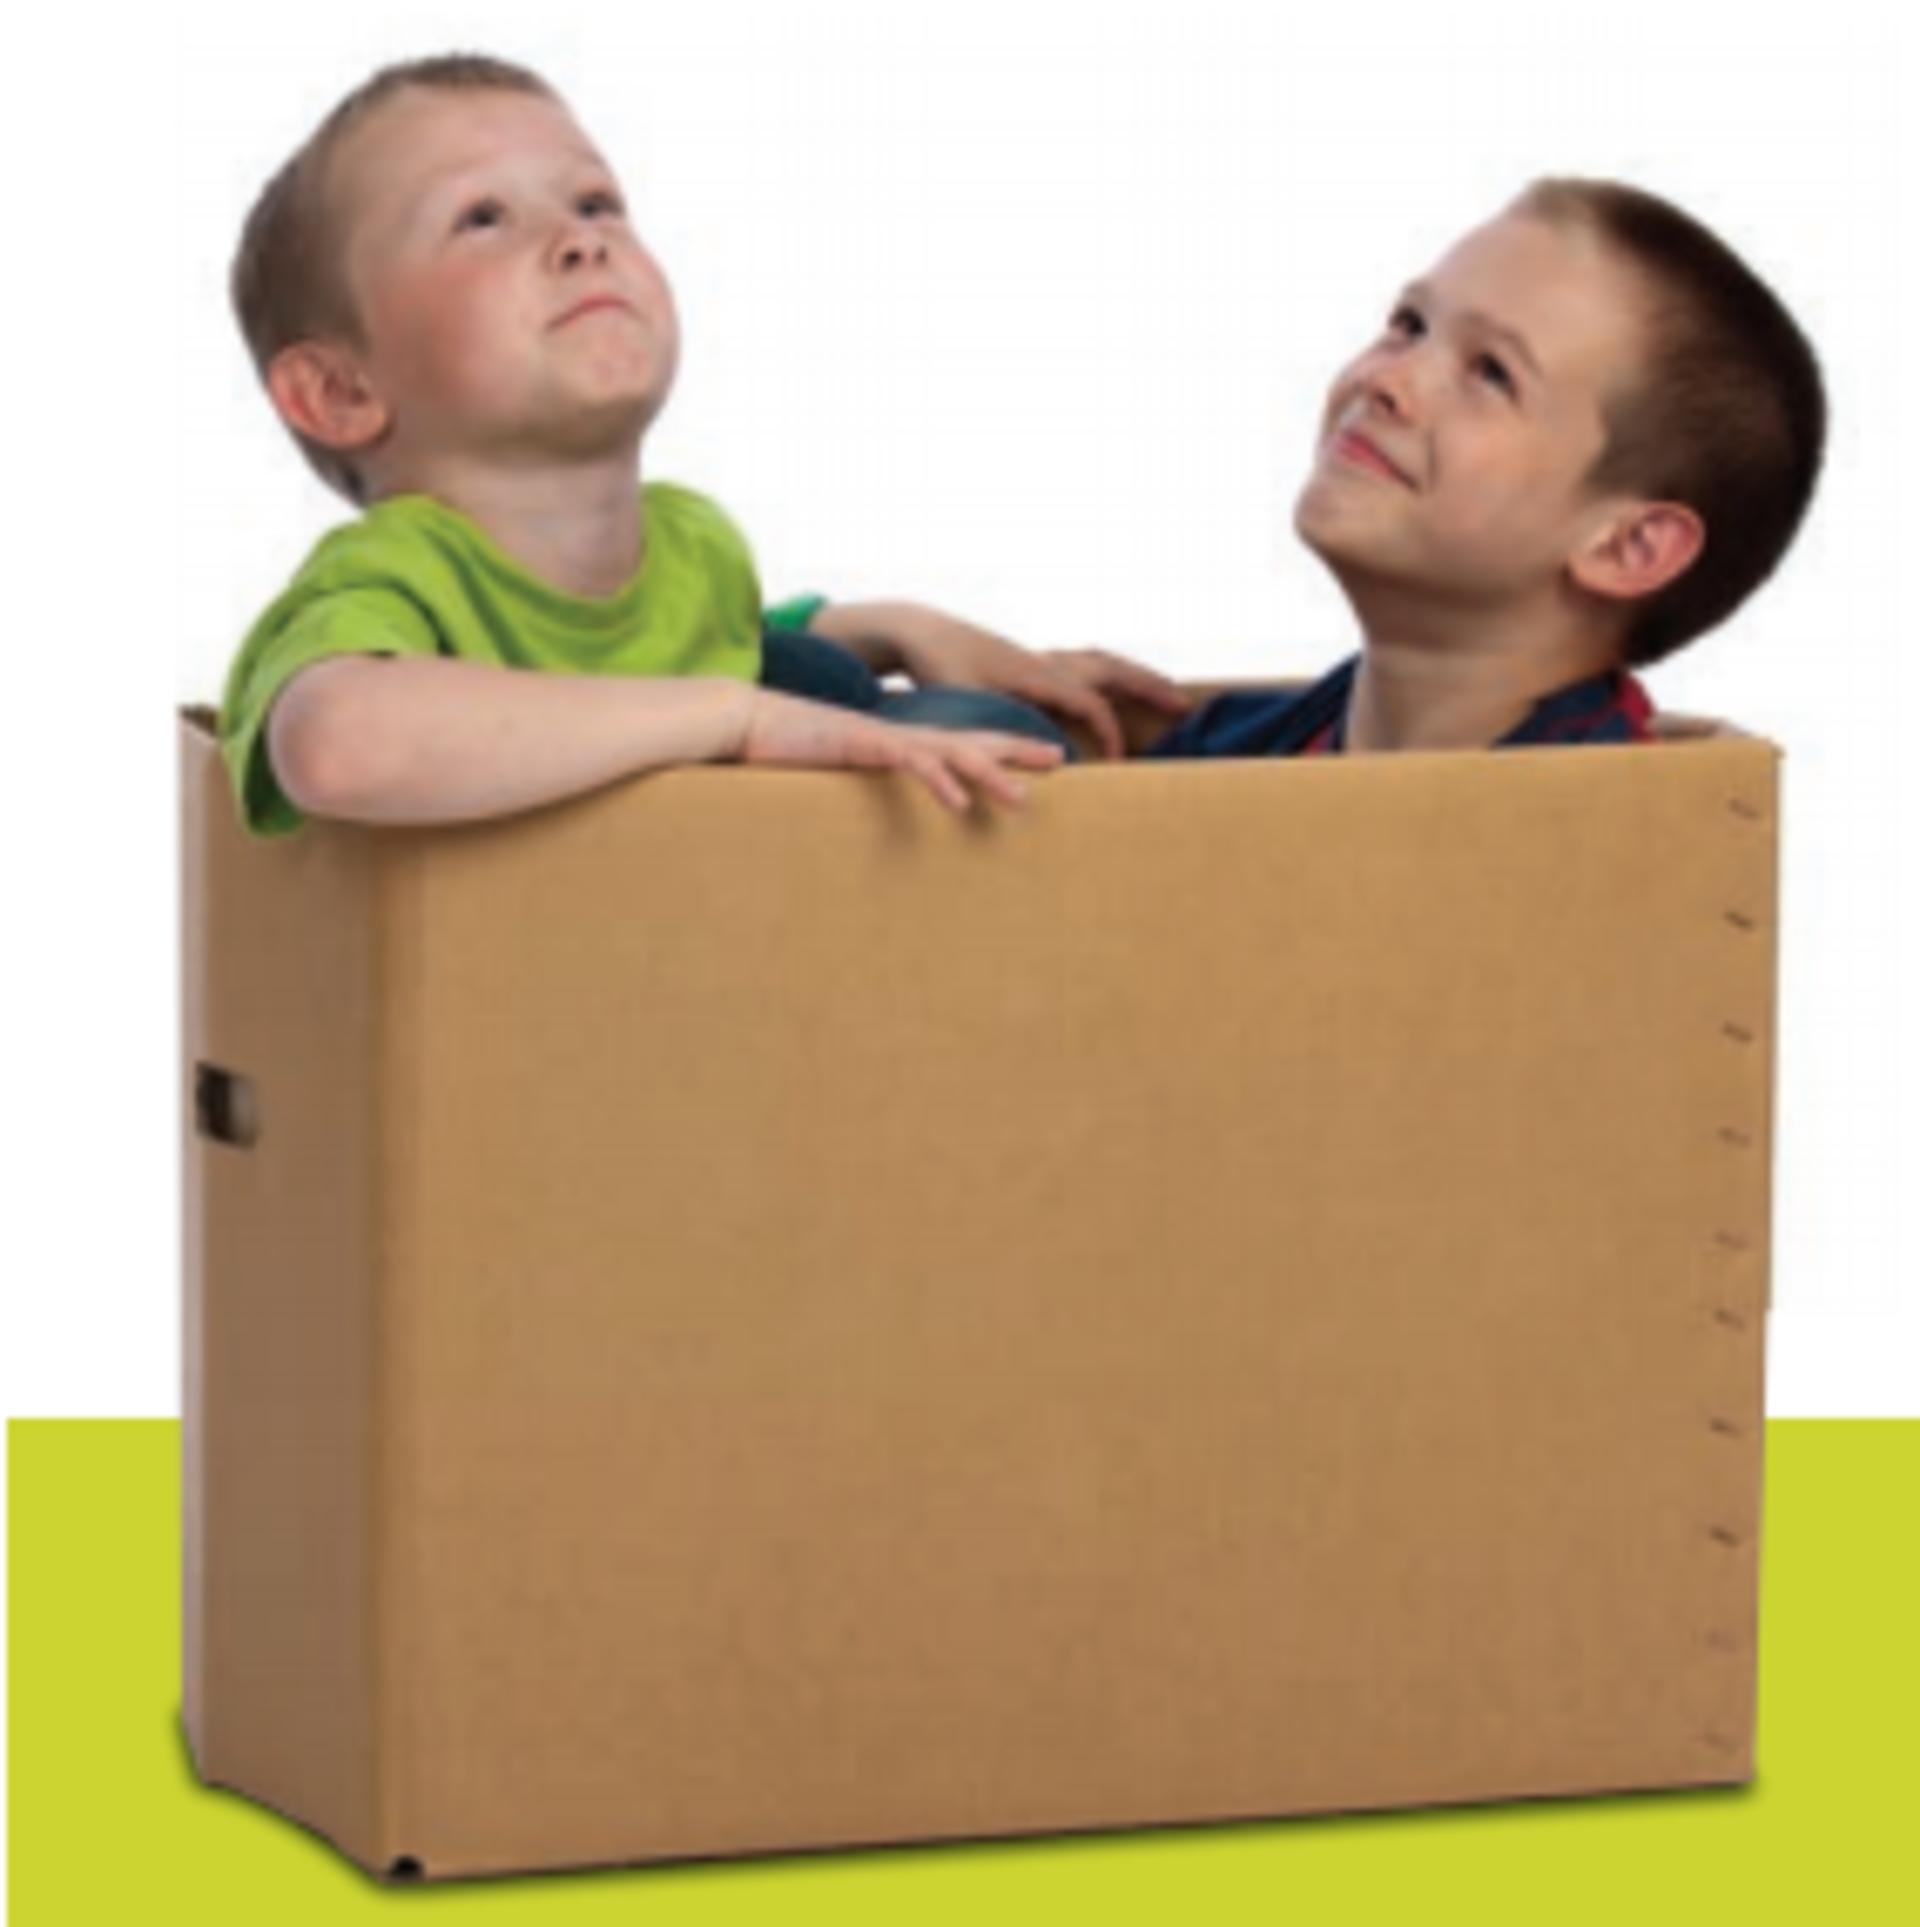 How to Make Moving With Kids a Little Less Painful